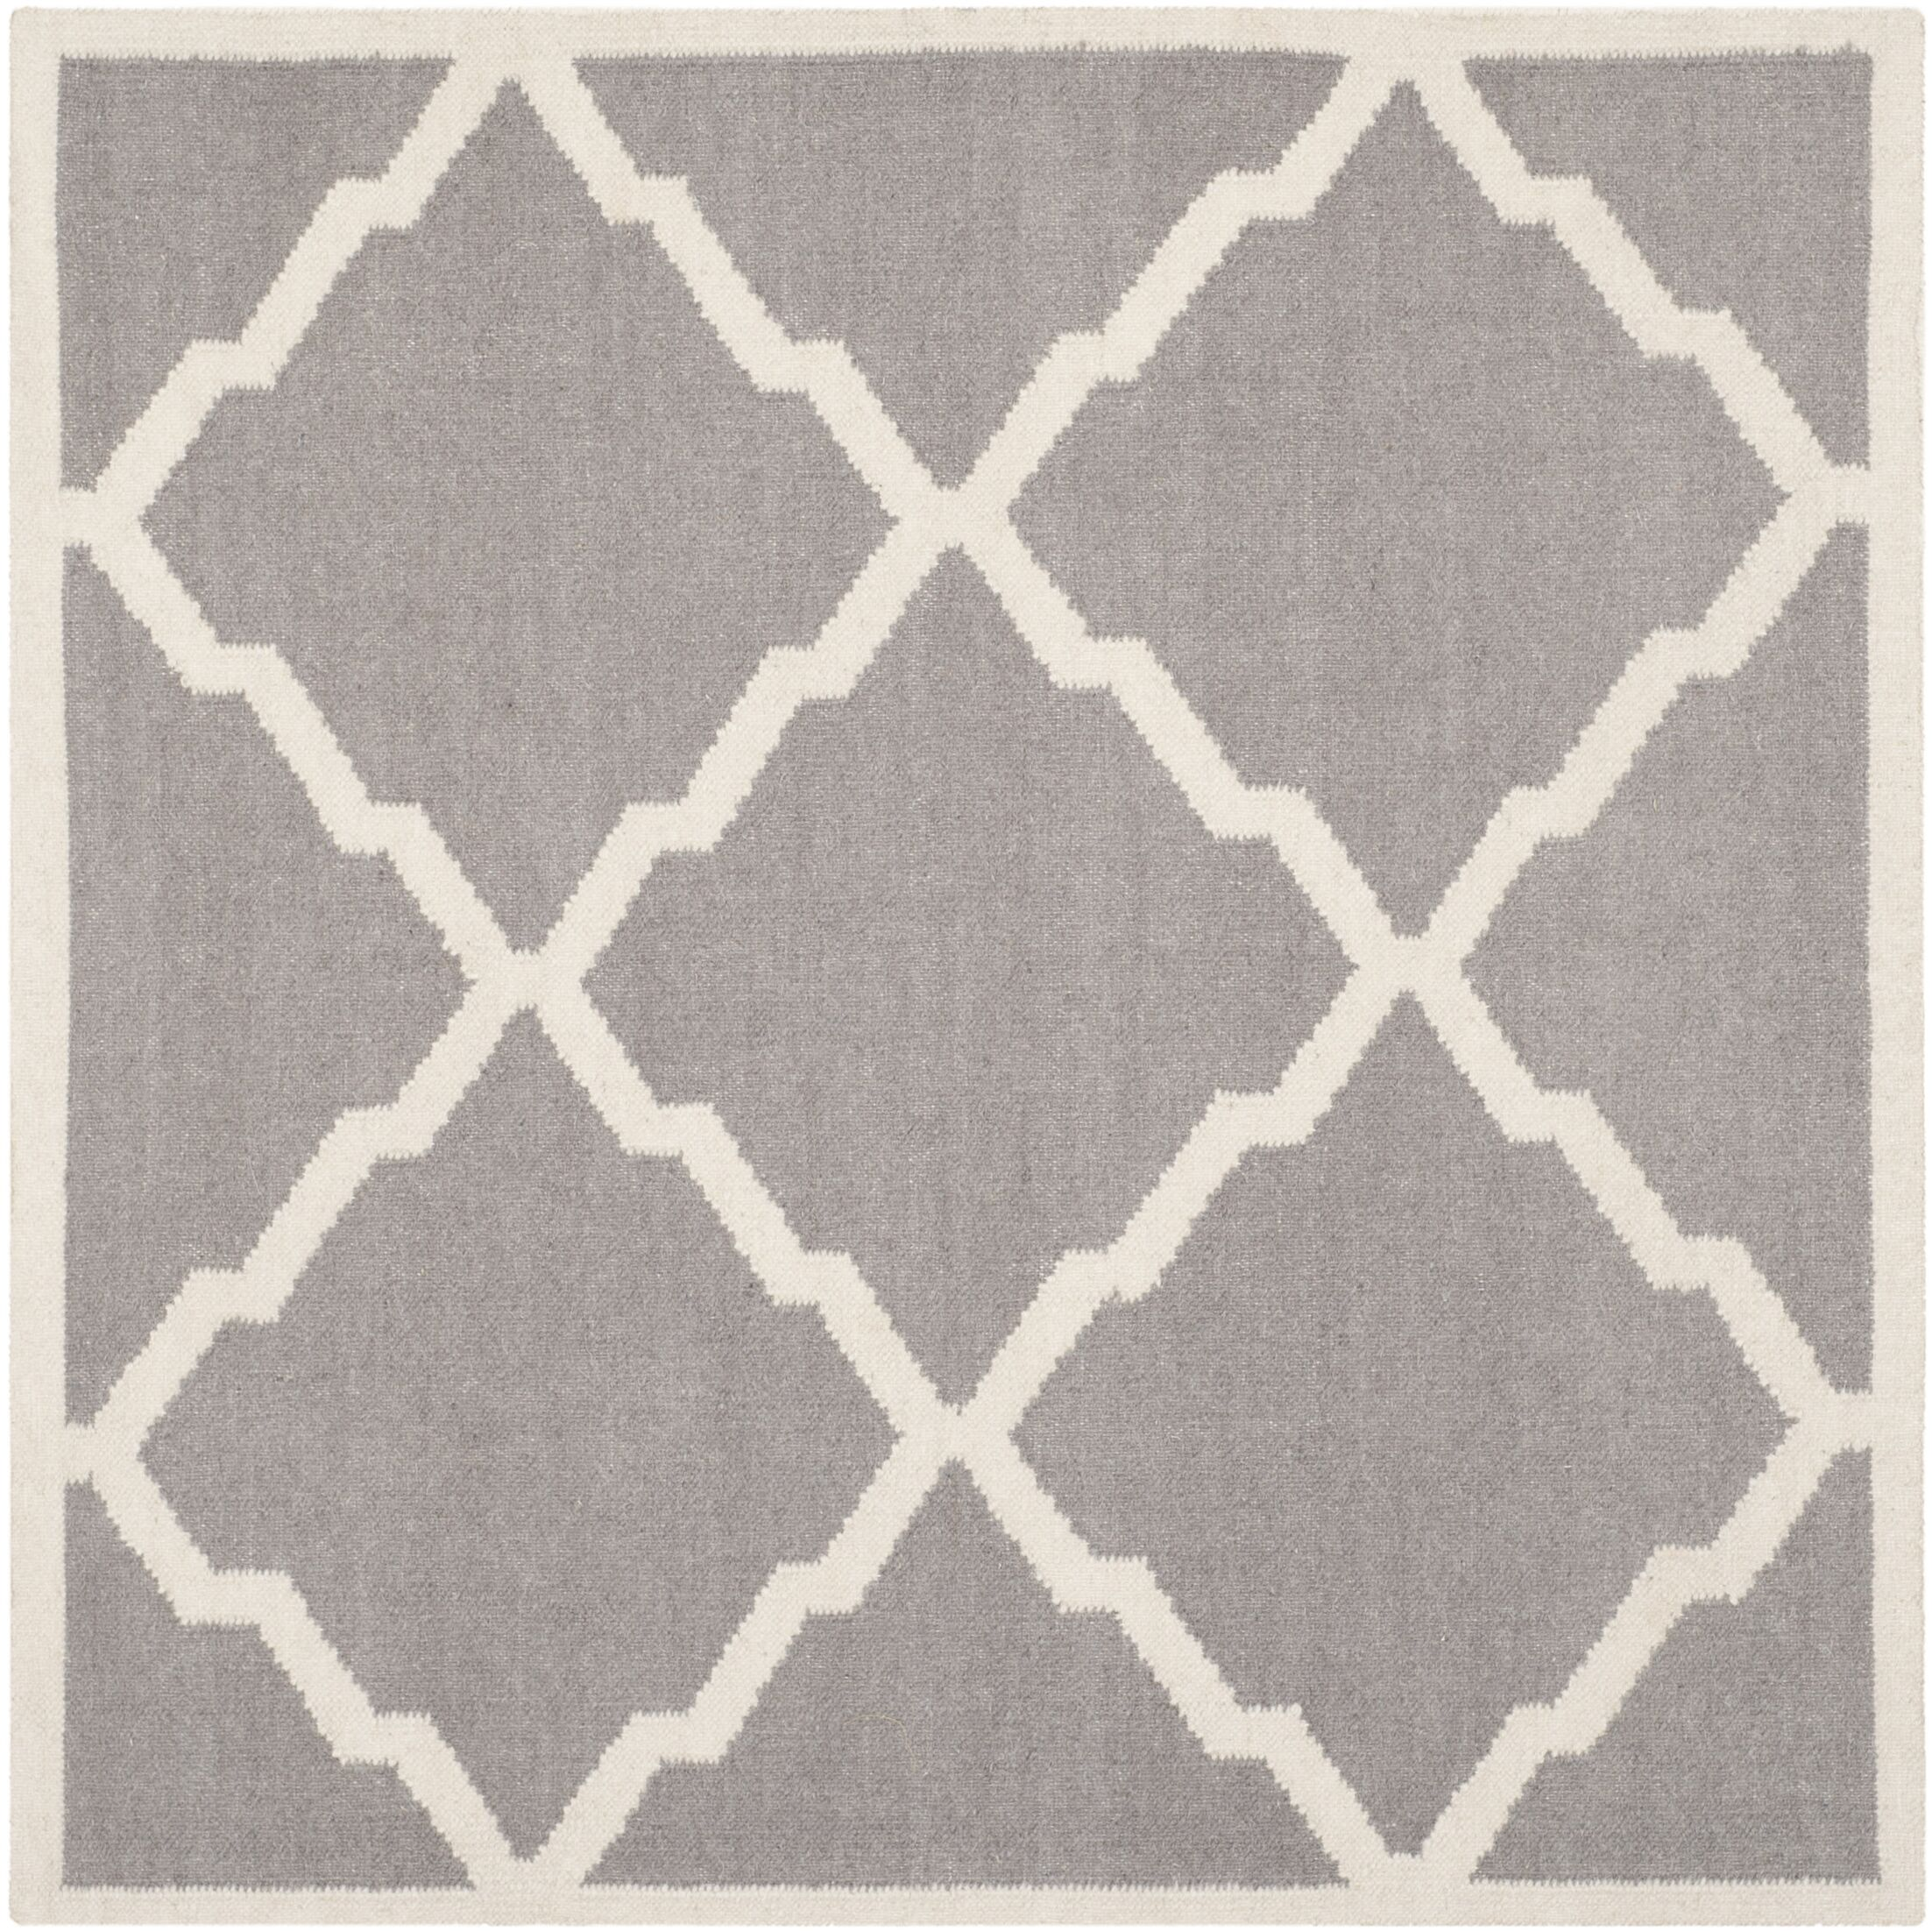 Brambach Hand-Woven Wool Grey/Ivory Area Rug Rug Size: Rectangle 4' x 4'